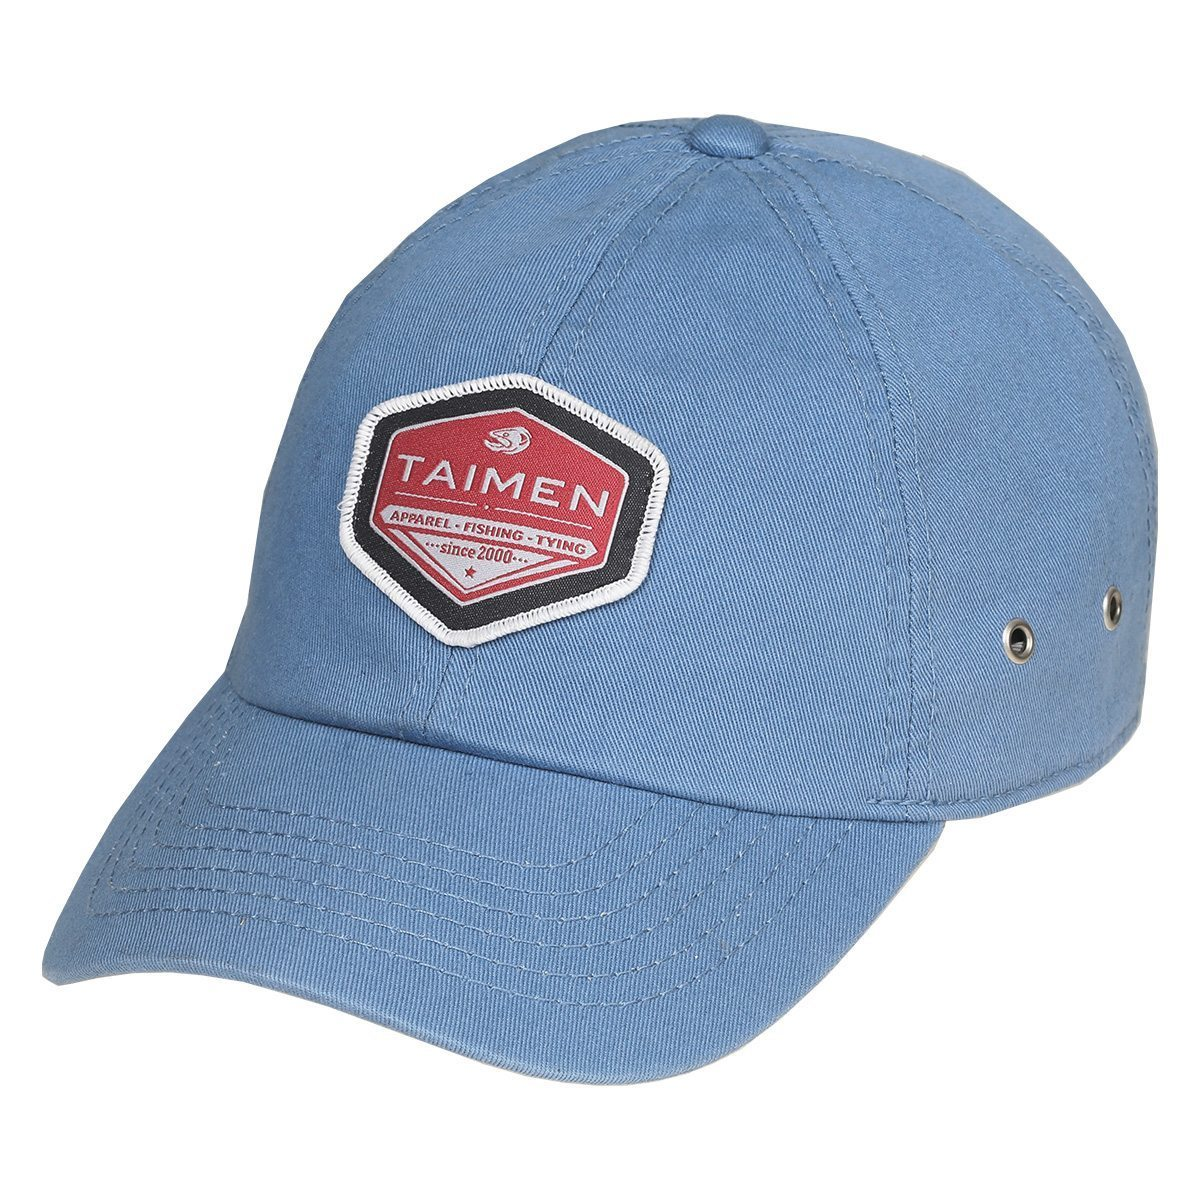 Taimen Fishing Cap Since 2000